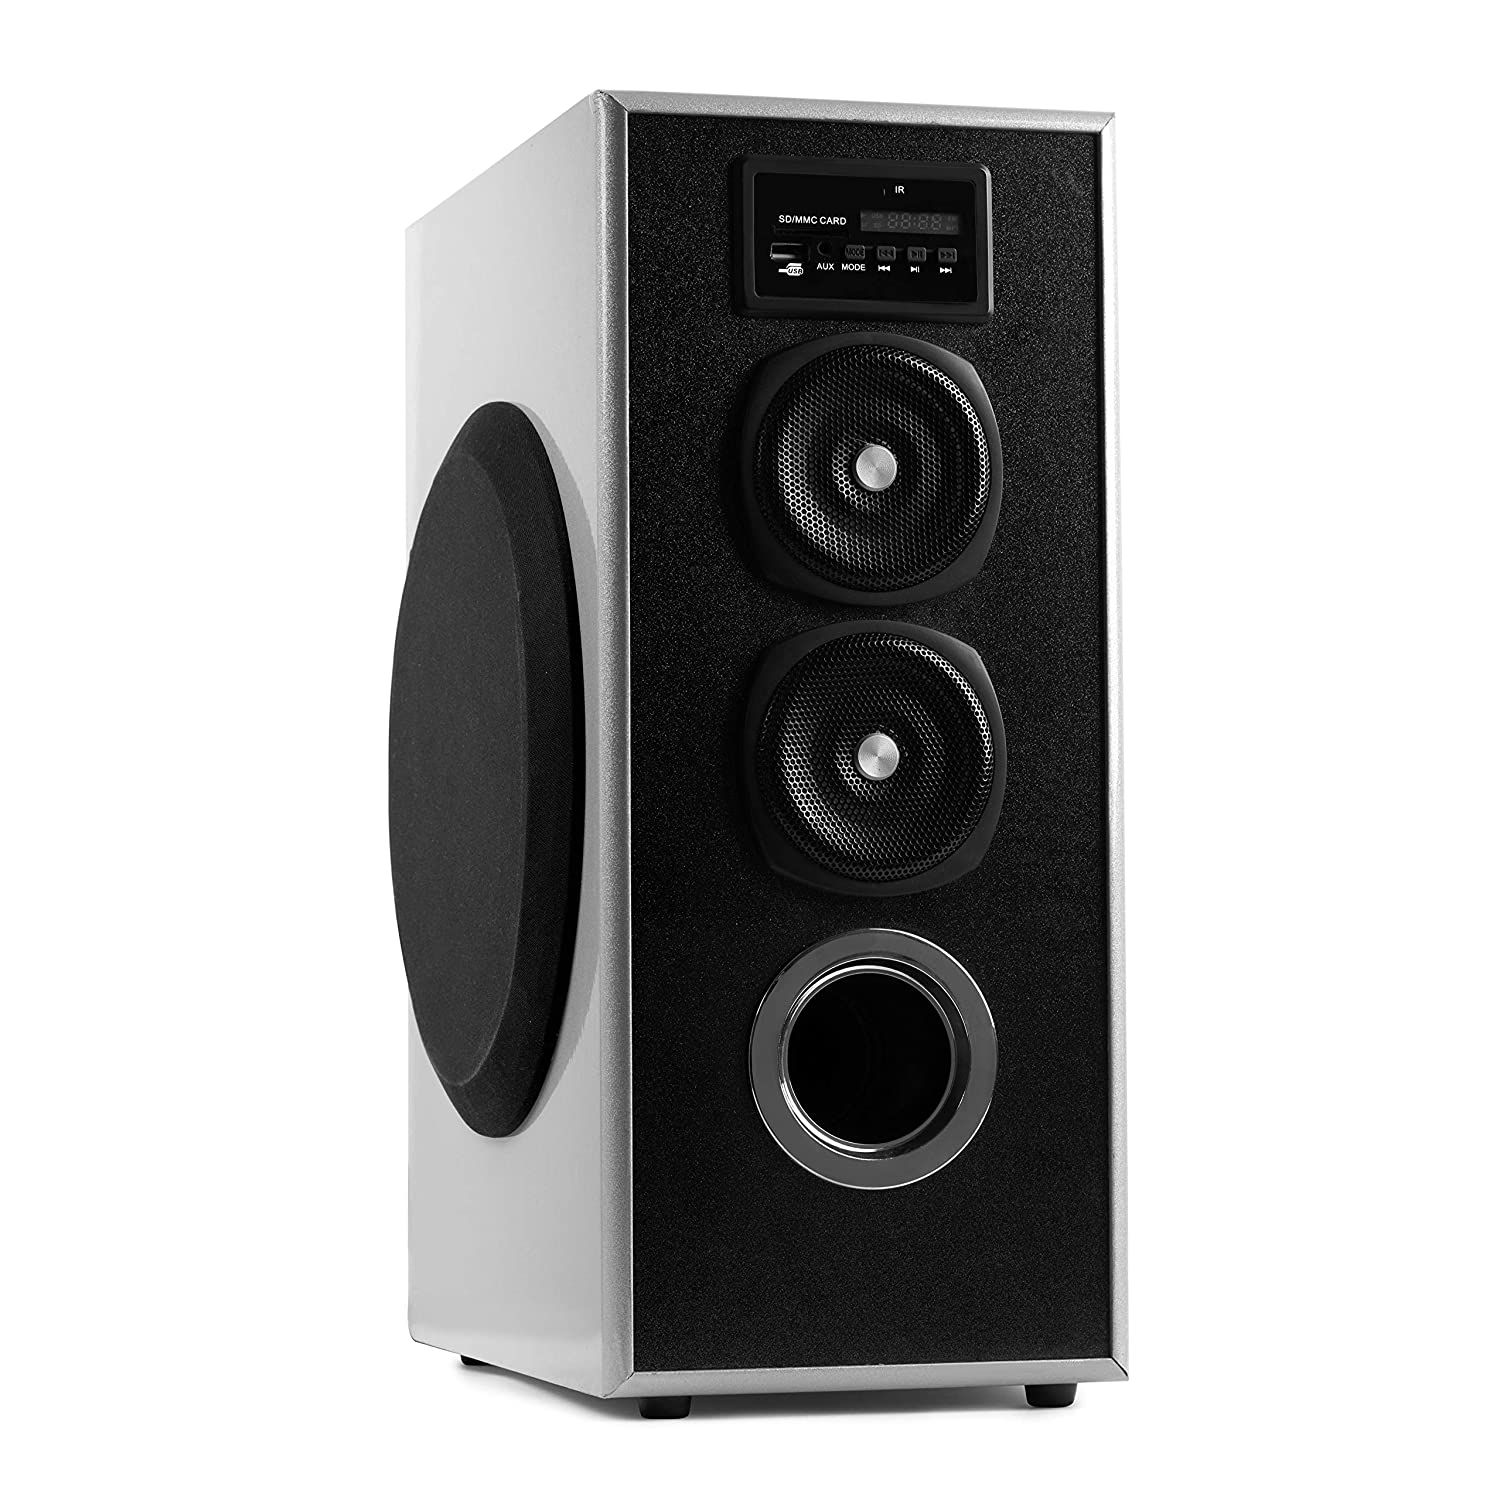 OBAGE MT-600 Single Tower Speaker System (Silver) with